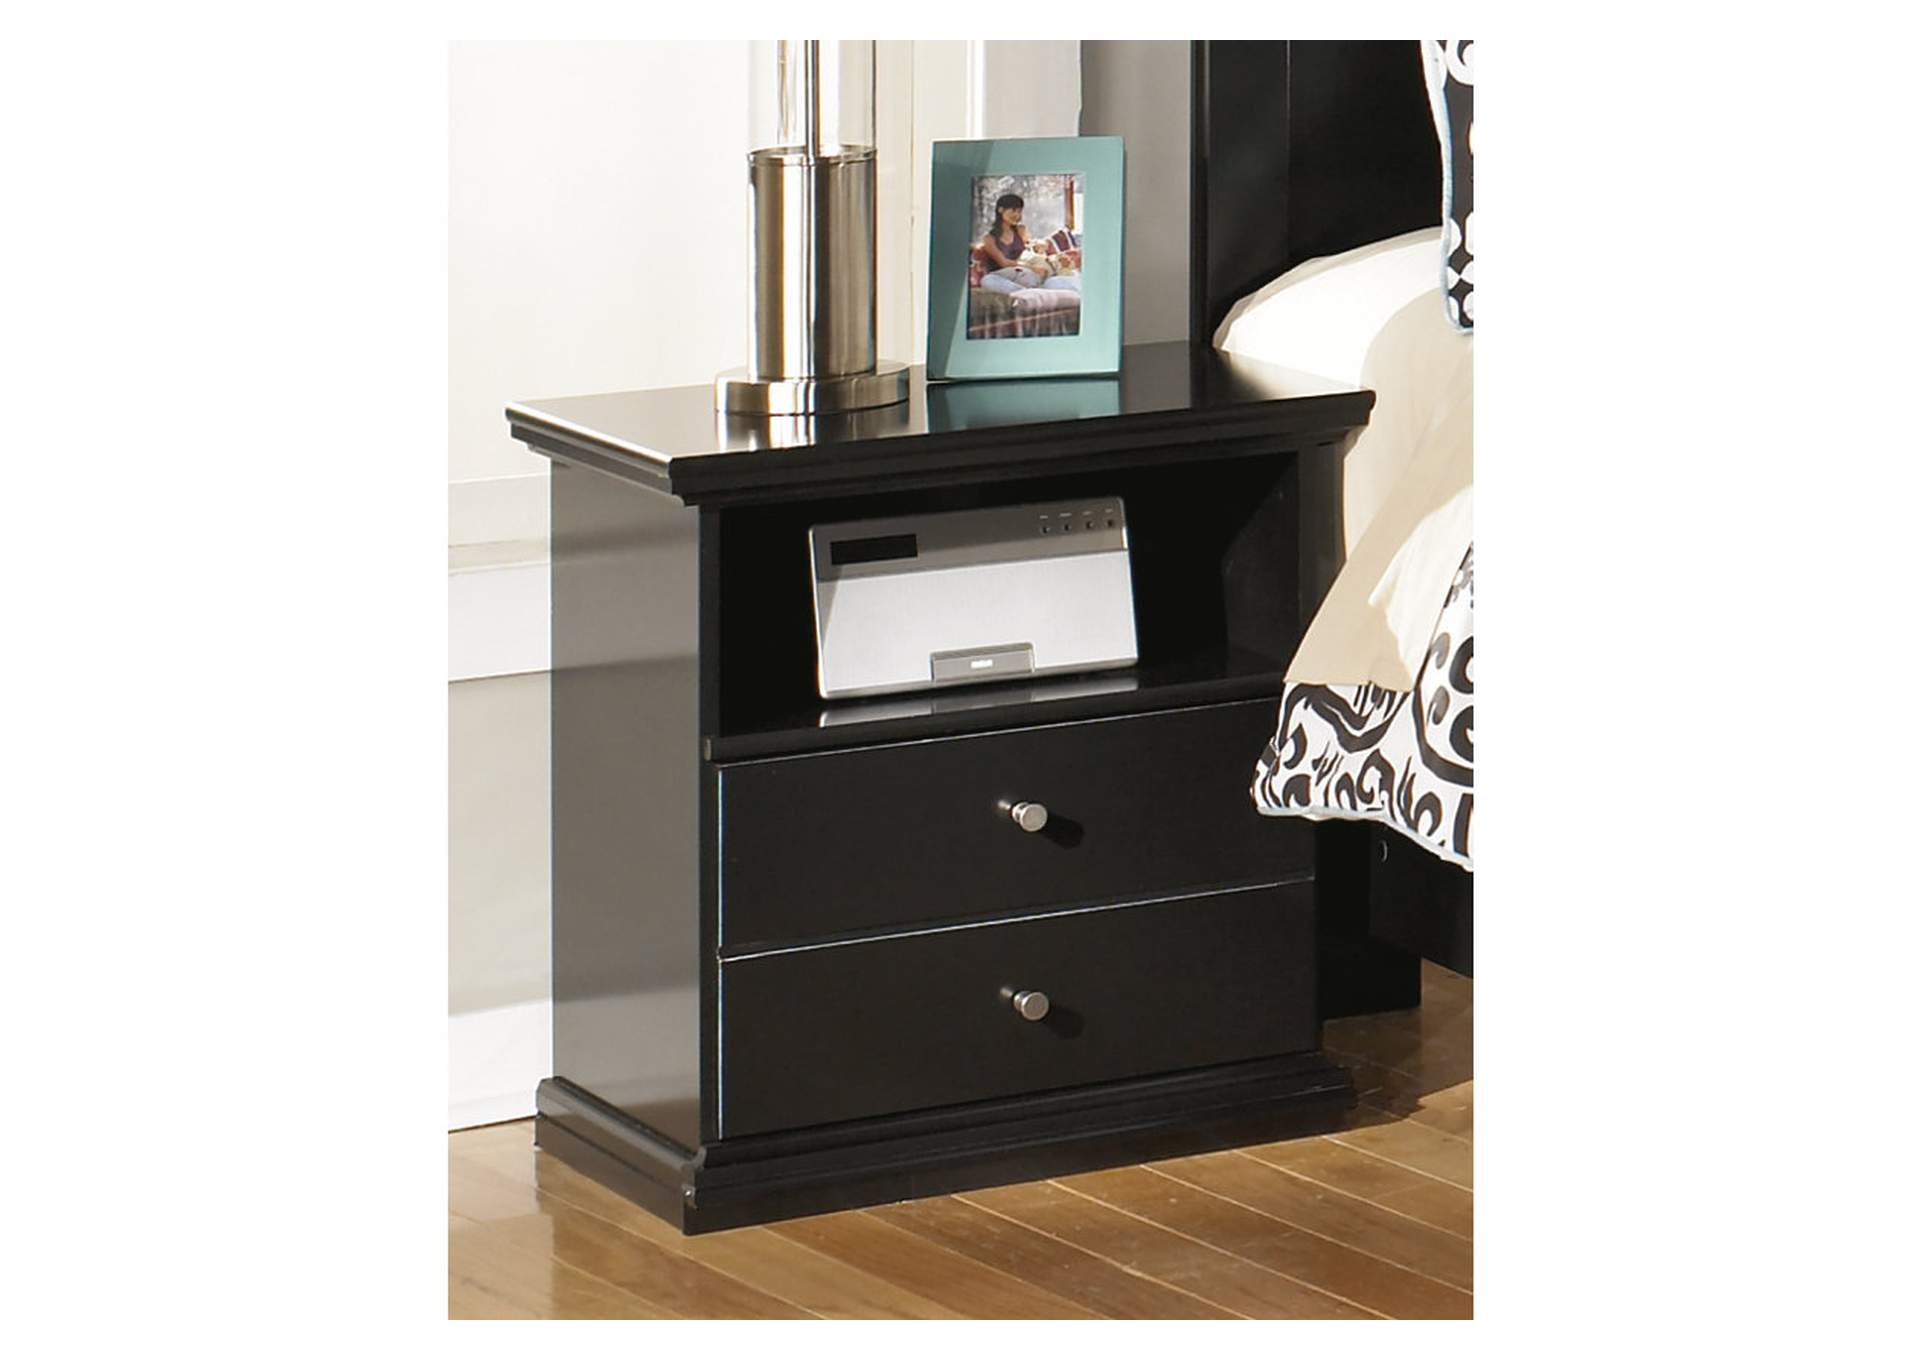 Maribel One Drawer Nightstand,Signature Design By Ashley